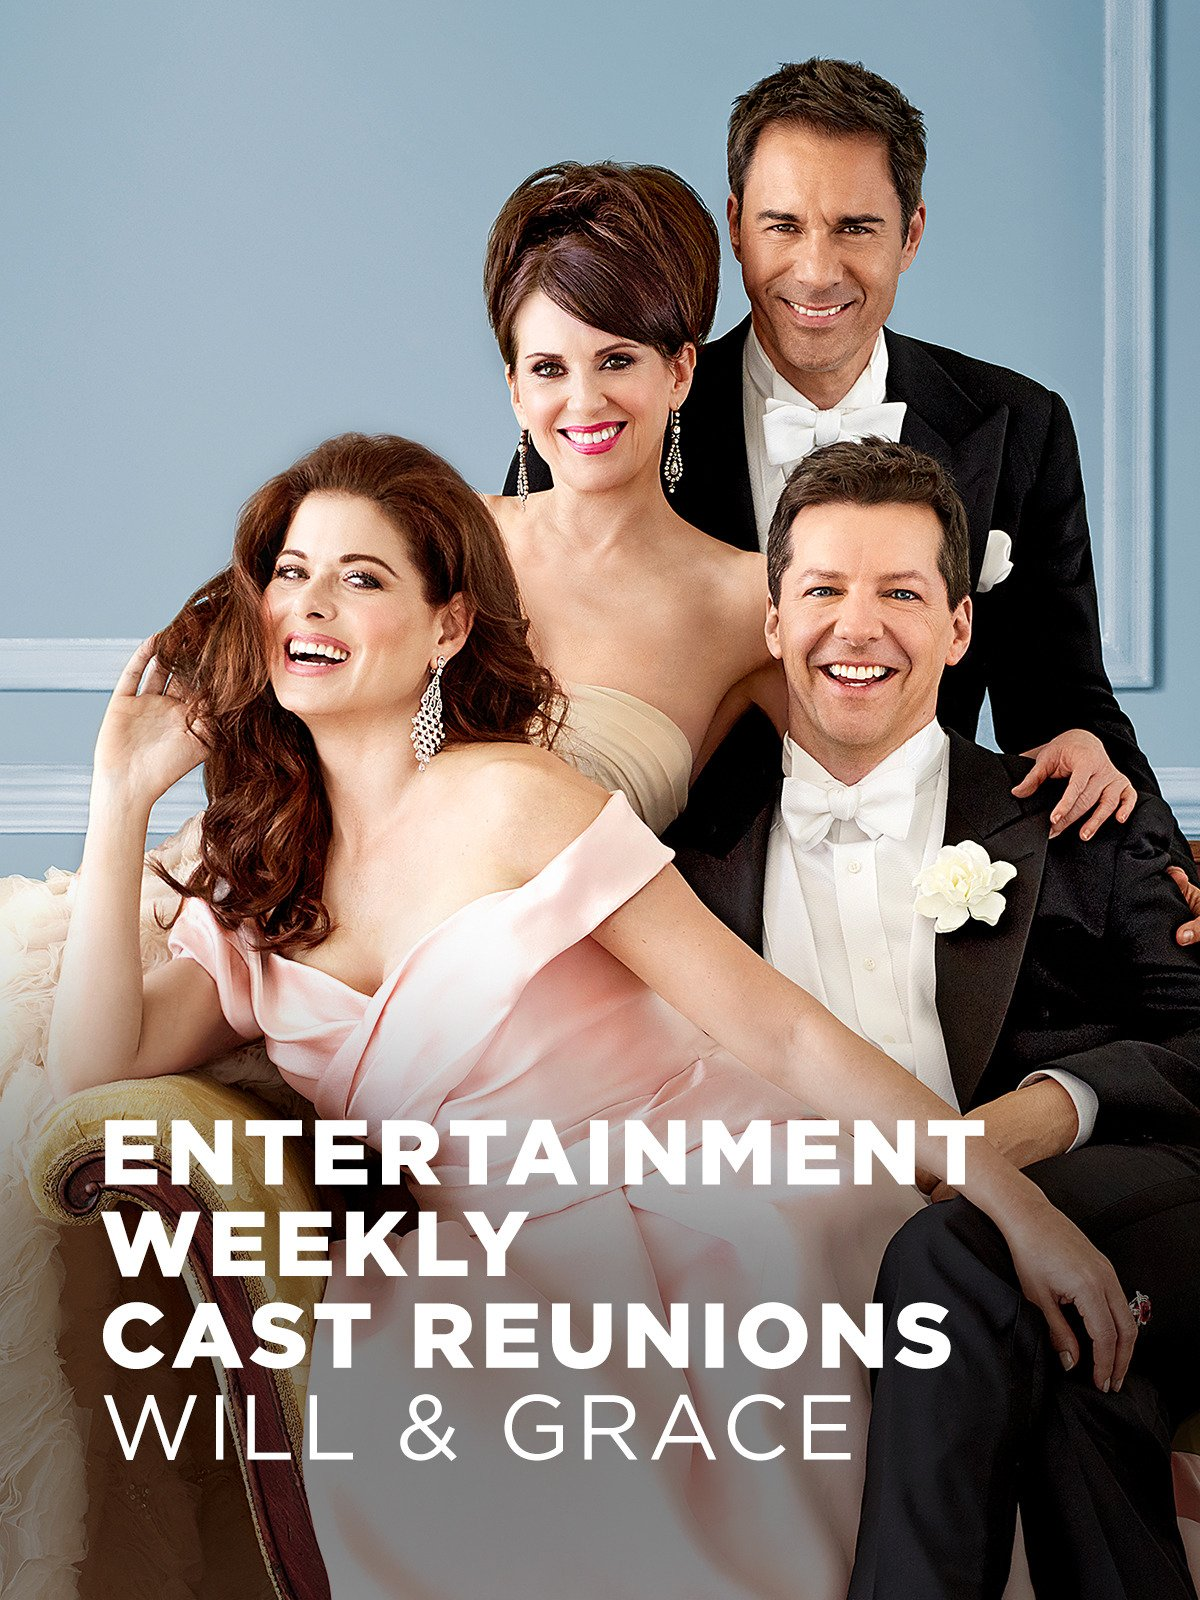 Entertainment Weekly Cast Reunions: Will and Grace on Amazon Prime Video UK